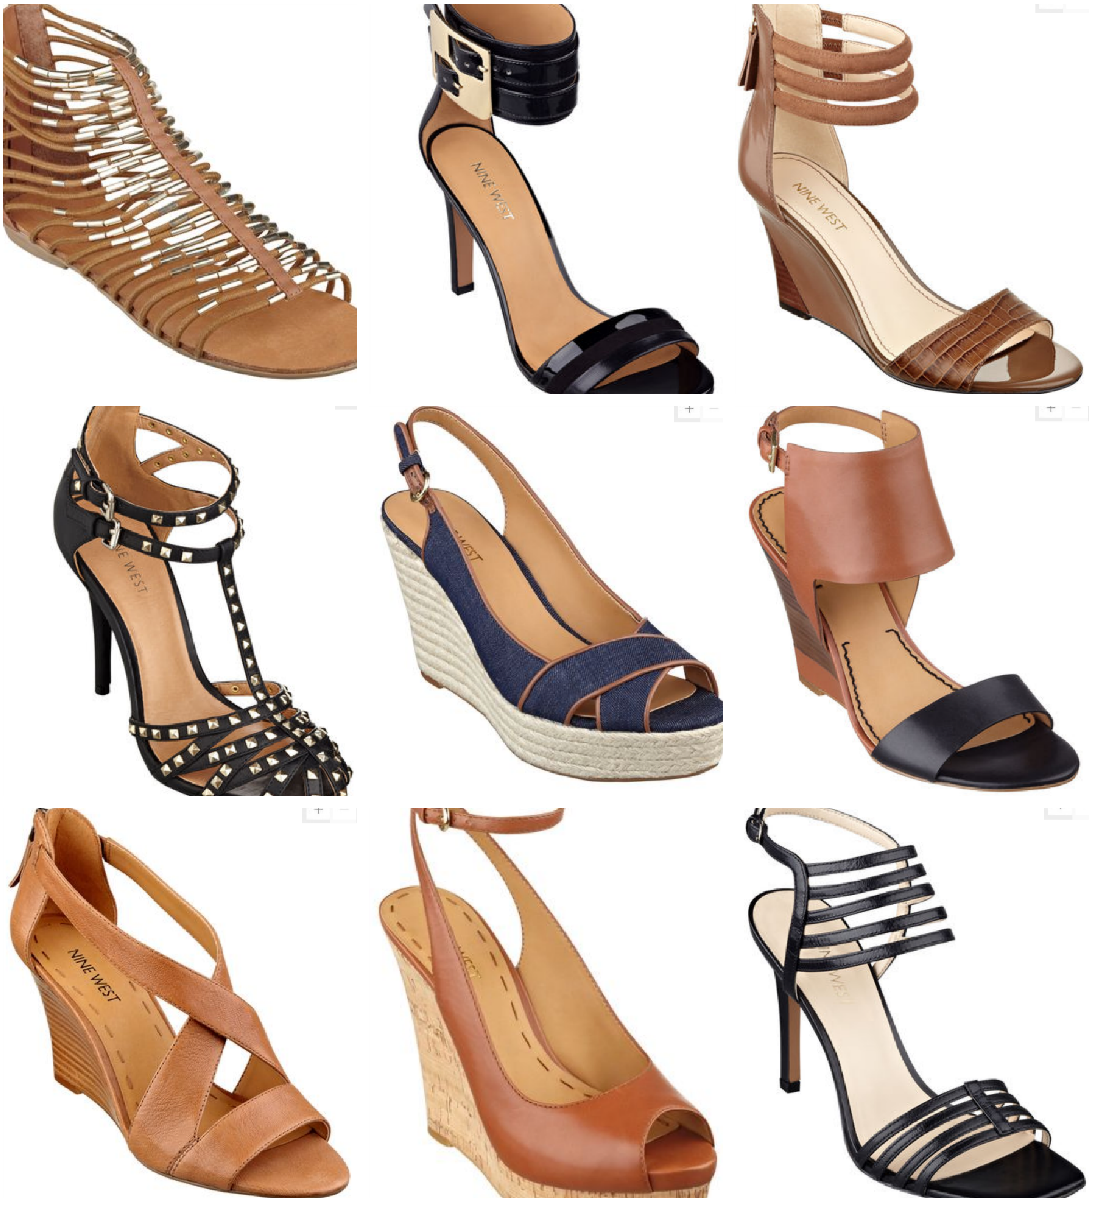 Nine west shoes online Shoes